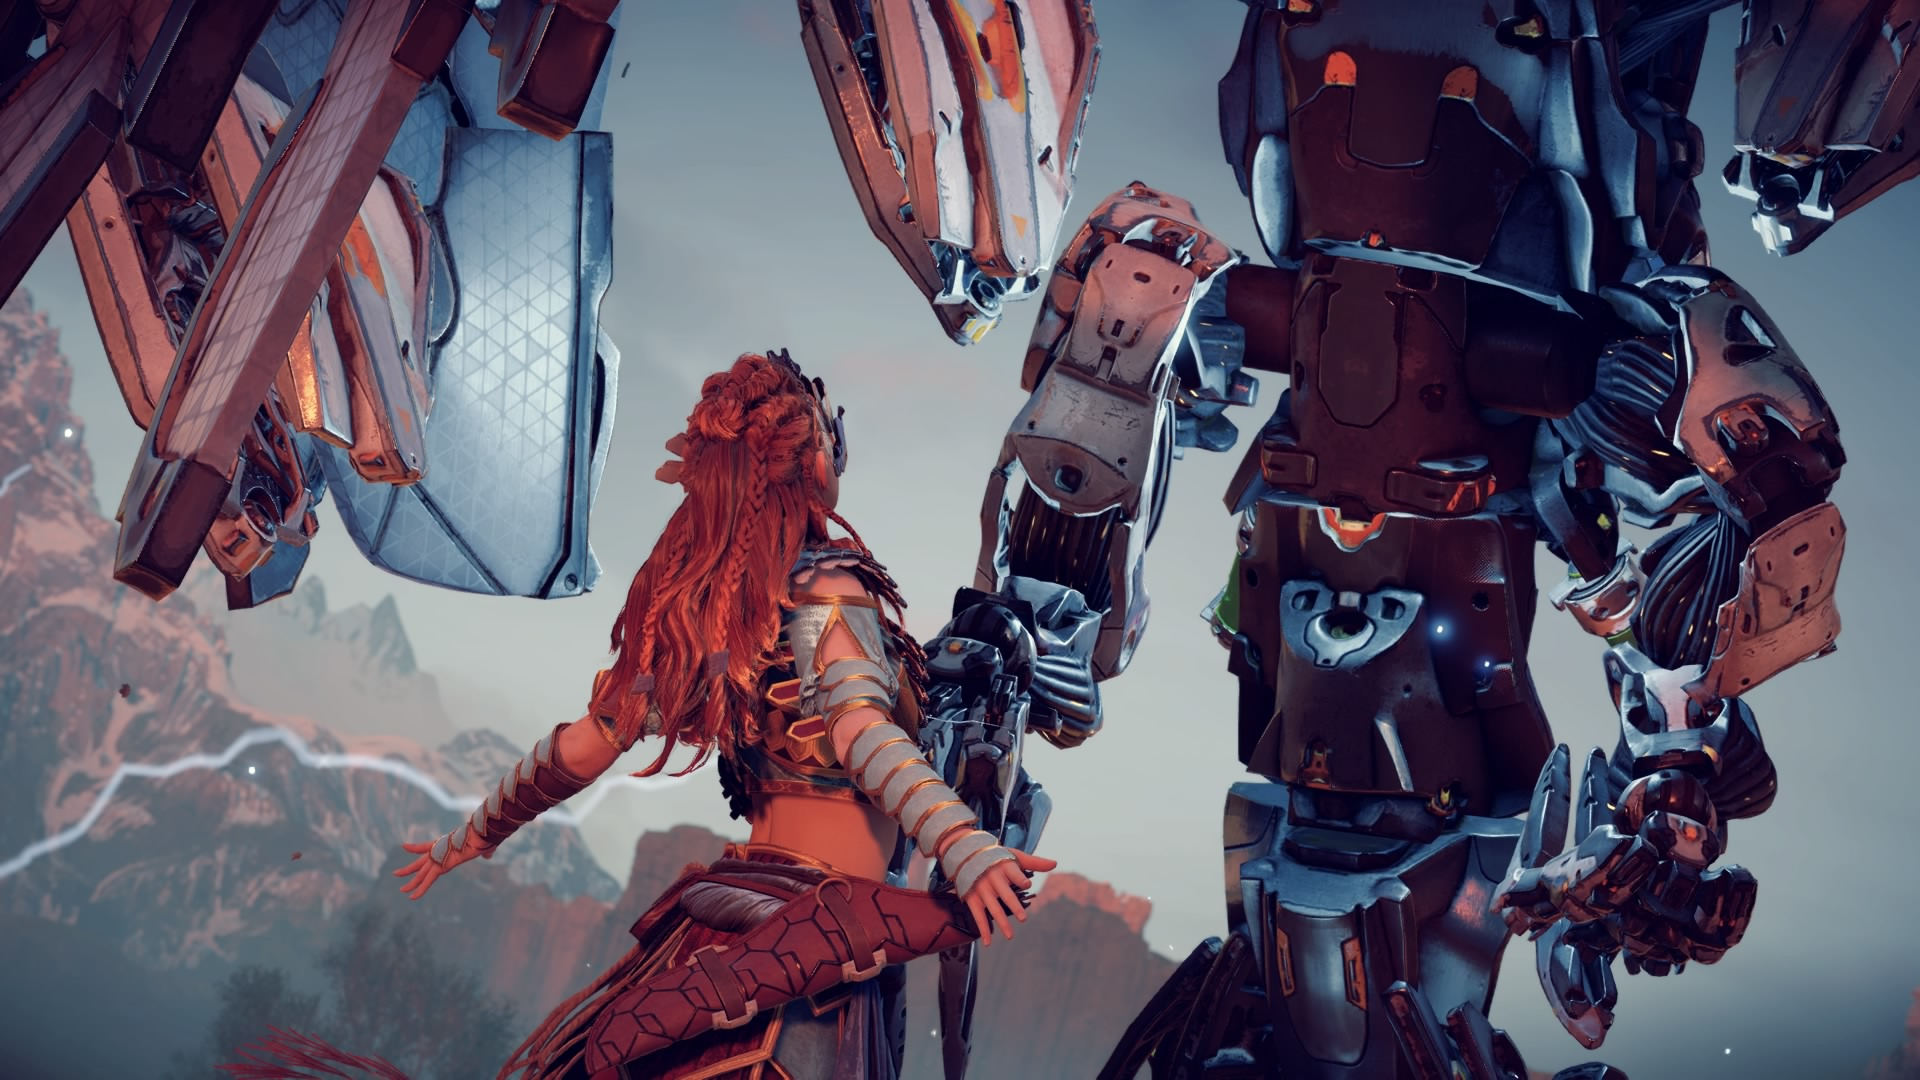 Horizon Zero Dawn - By Lady SnipeShot